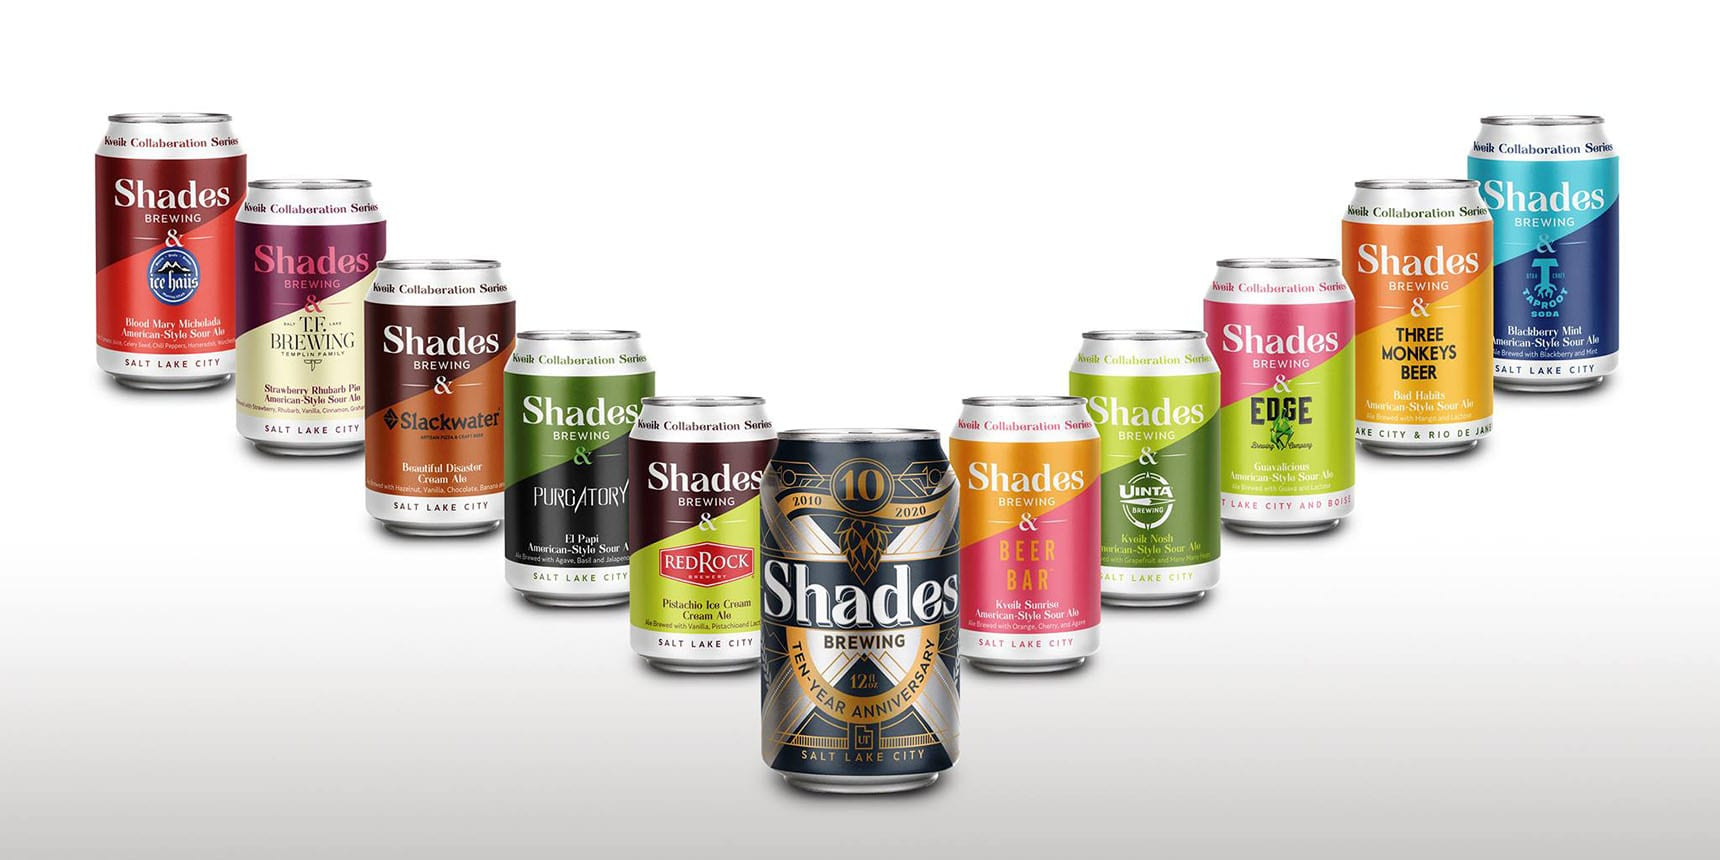 Shades Brewing is celebrating its 10-year anniversary by releasing a series of collaboration beers over the next several weeks. Photo Credit: Shades Brewing